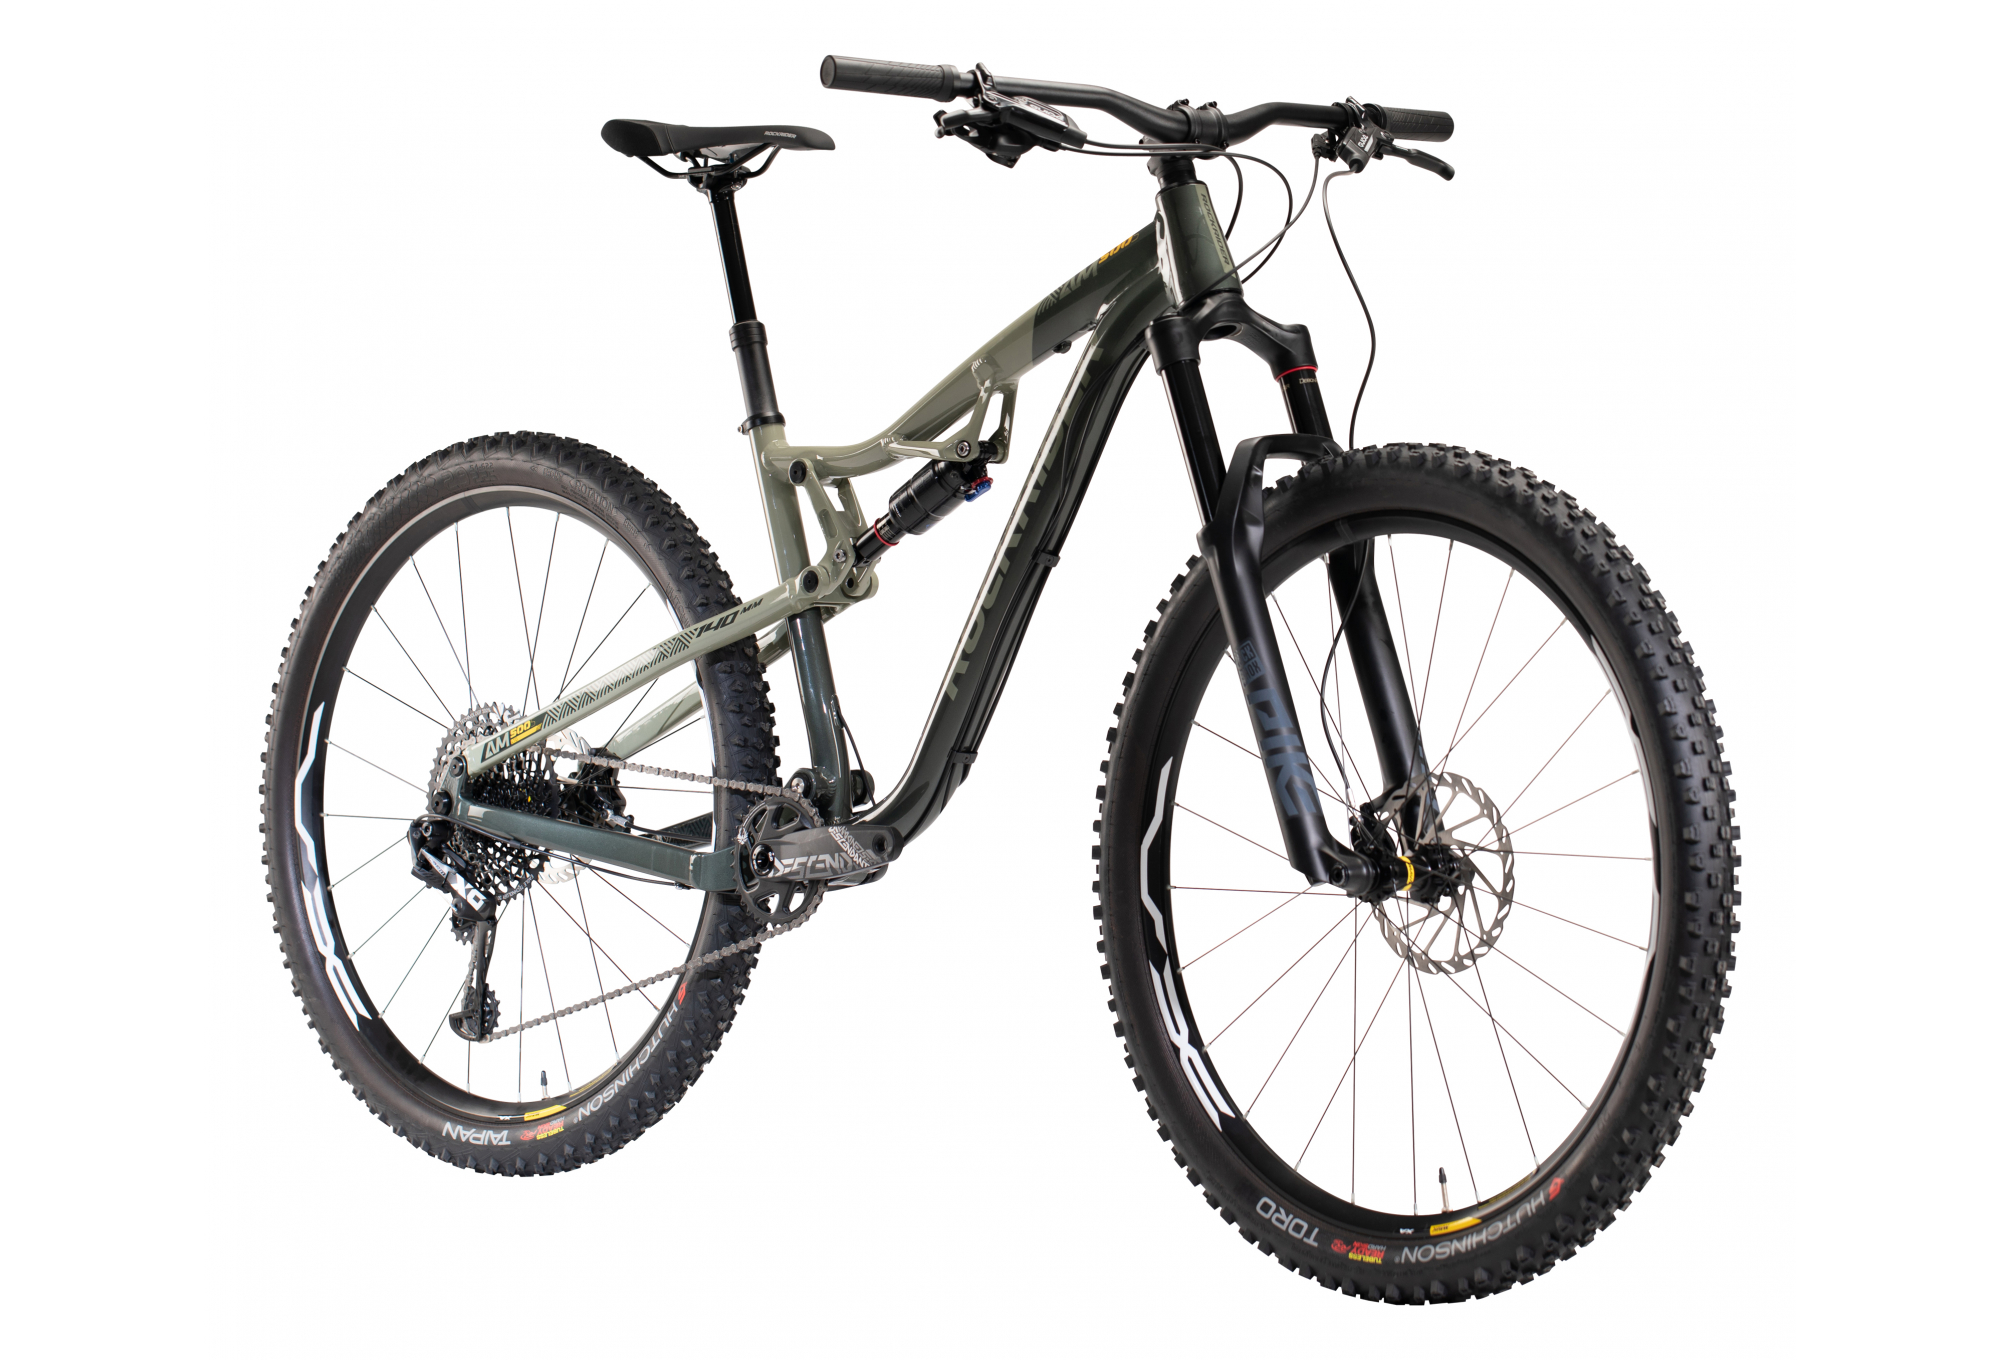 DECATHLON LANZA AL MERCADO UNA ENDURO MTB - ROCKRIDER AM 500S LTD